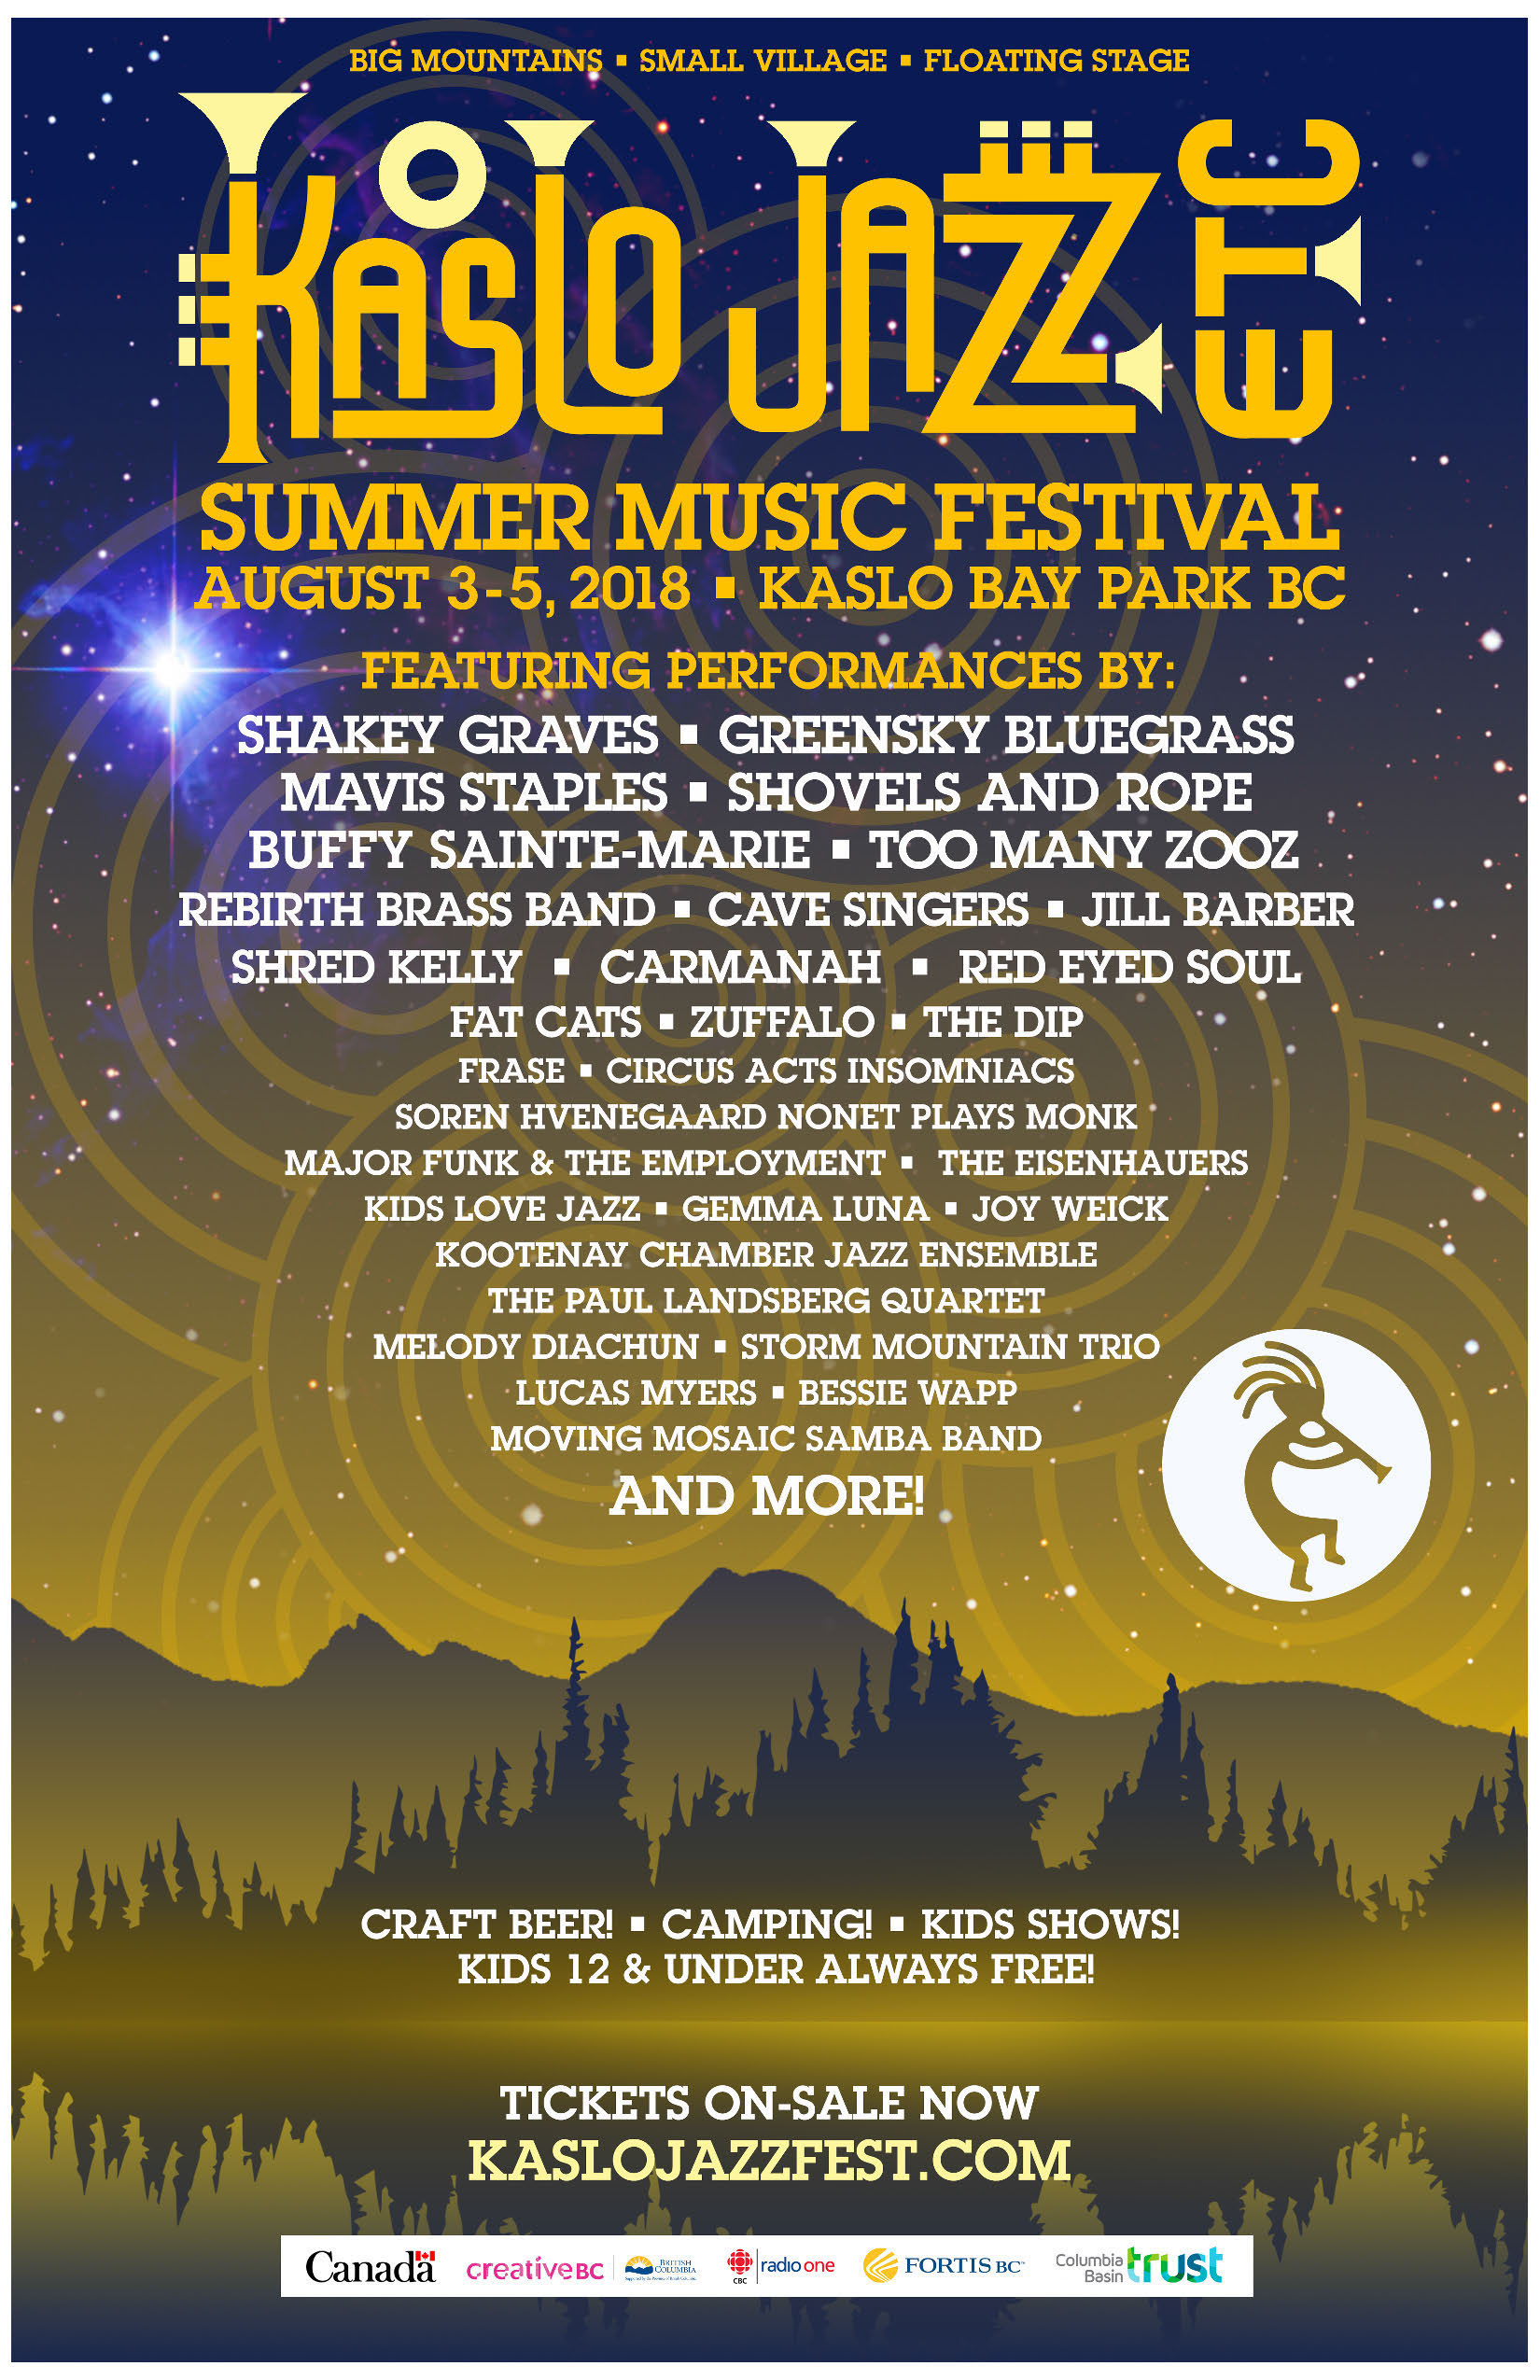 Festival Archive - Kaslo Jazz Etc Summer Music Festival